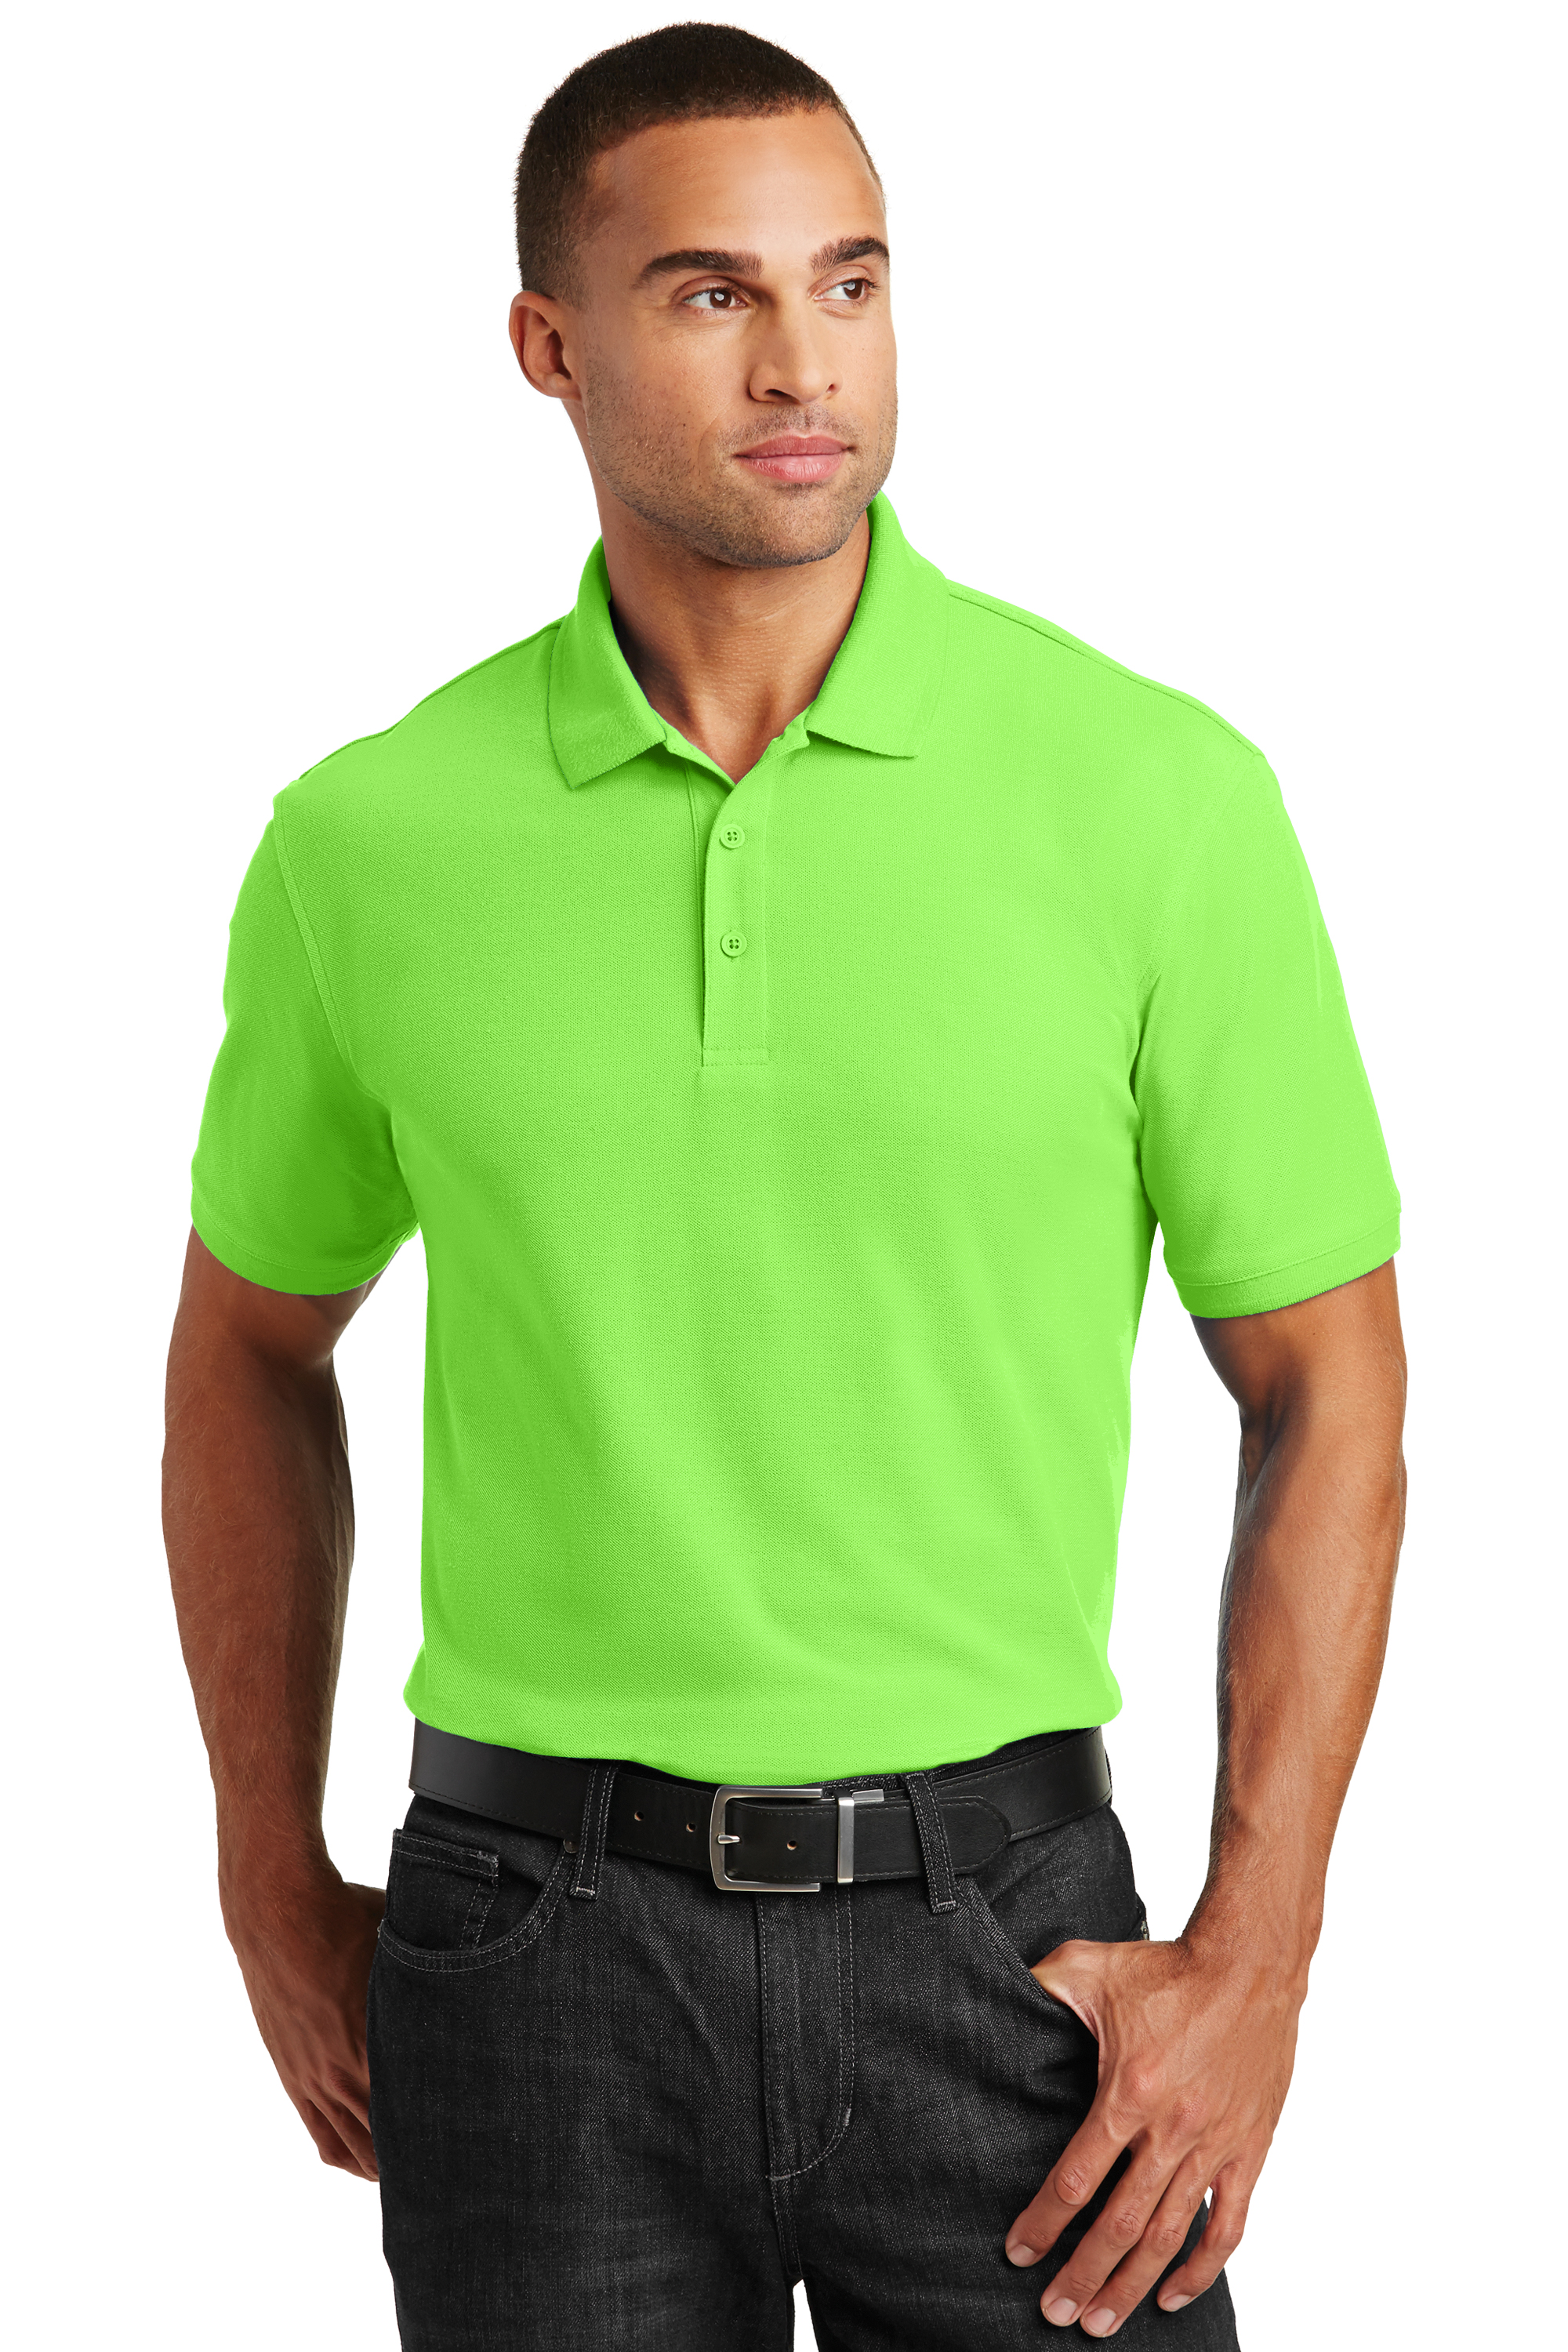 Collection Lime Green Polo Shirts For Men Pictures P001